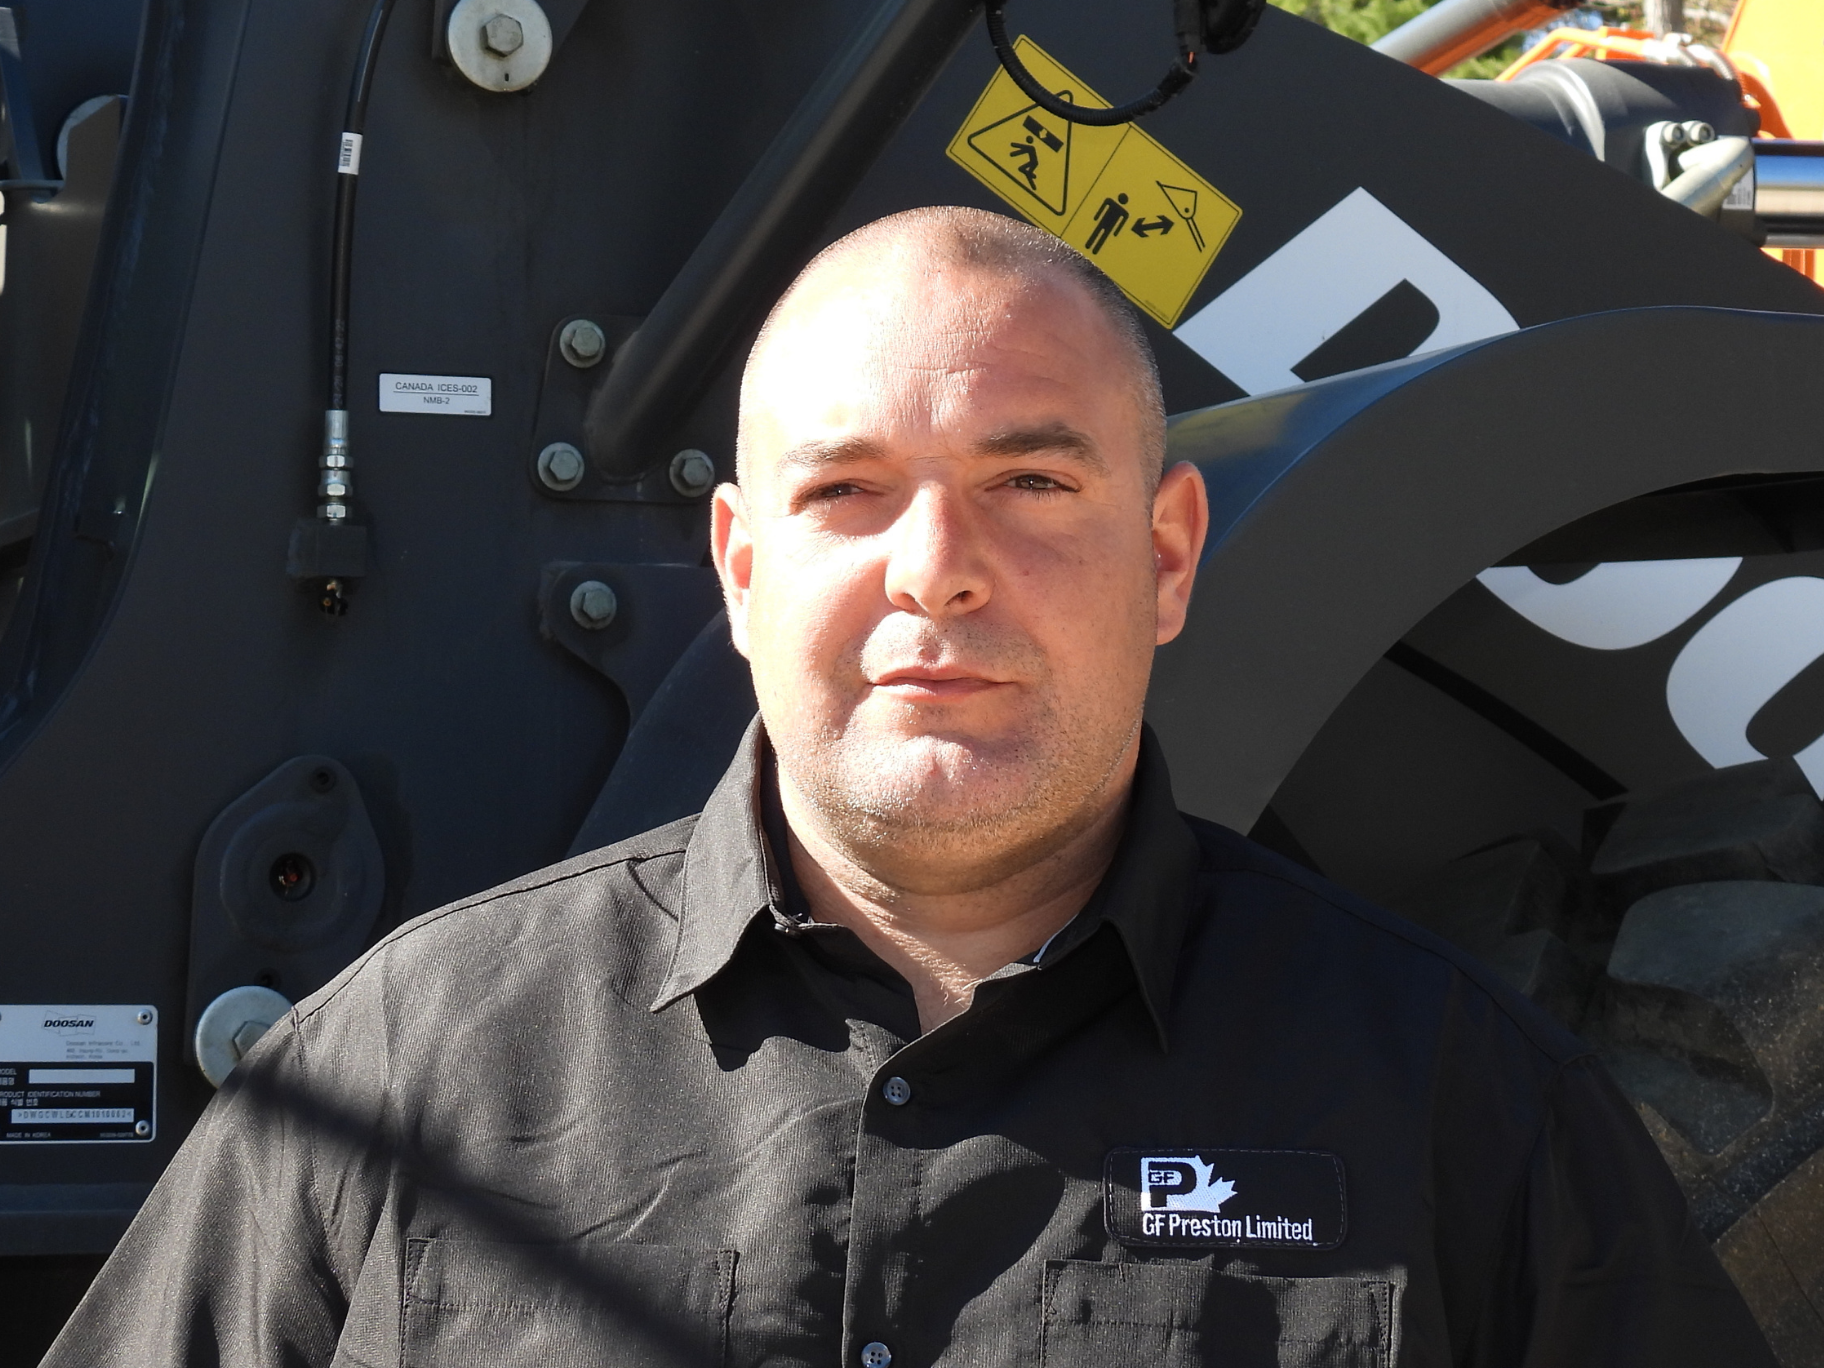 Jamie Smith Service Manager Email – jamie@gfpreston.com Number – (877) 245-2456 Ext – 106